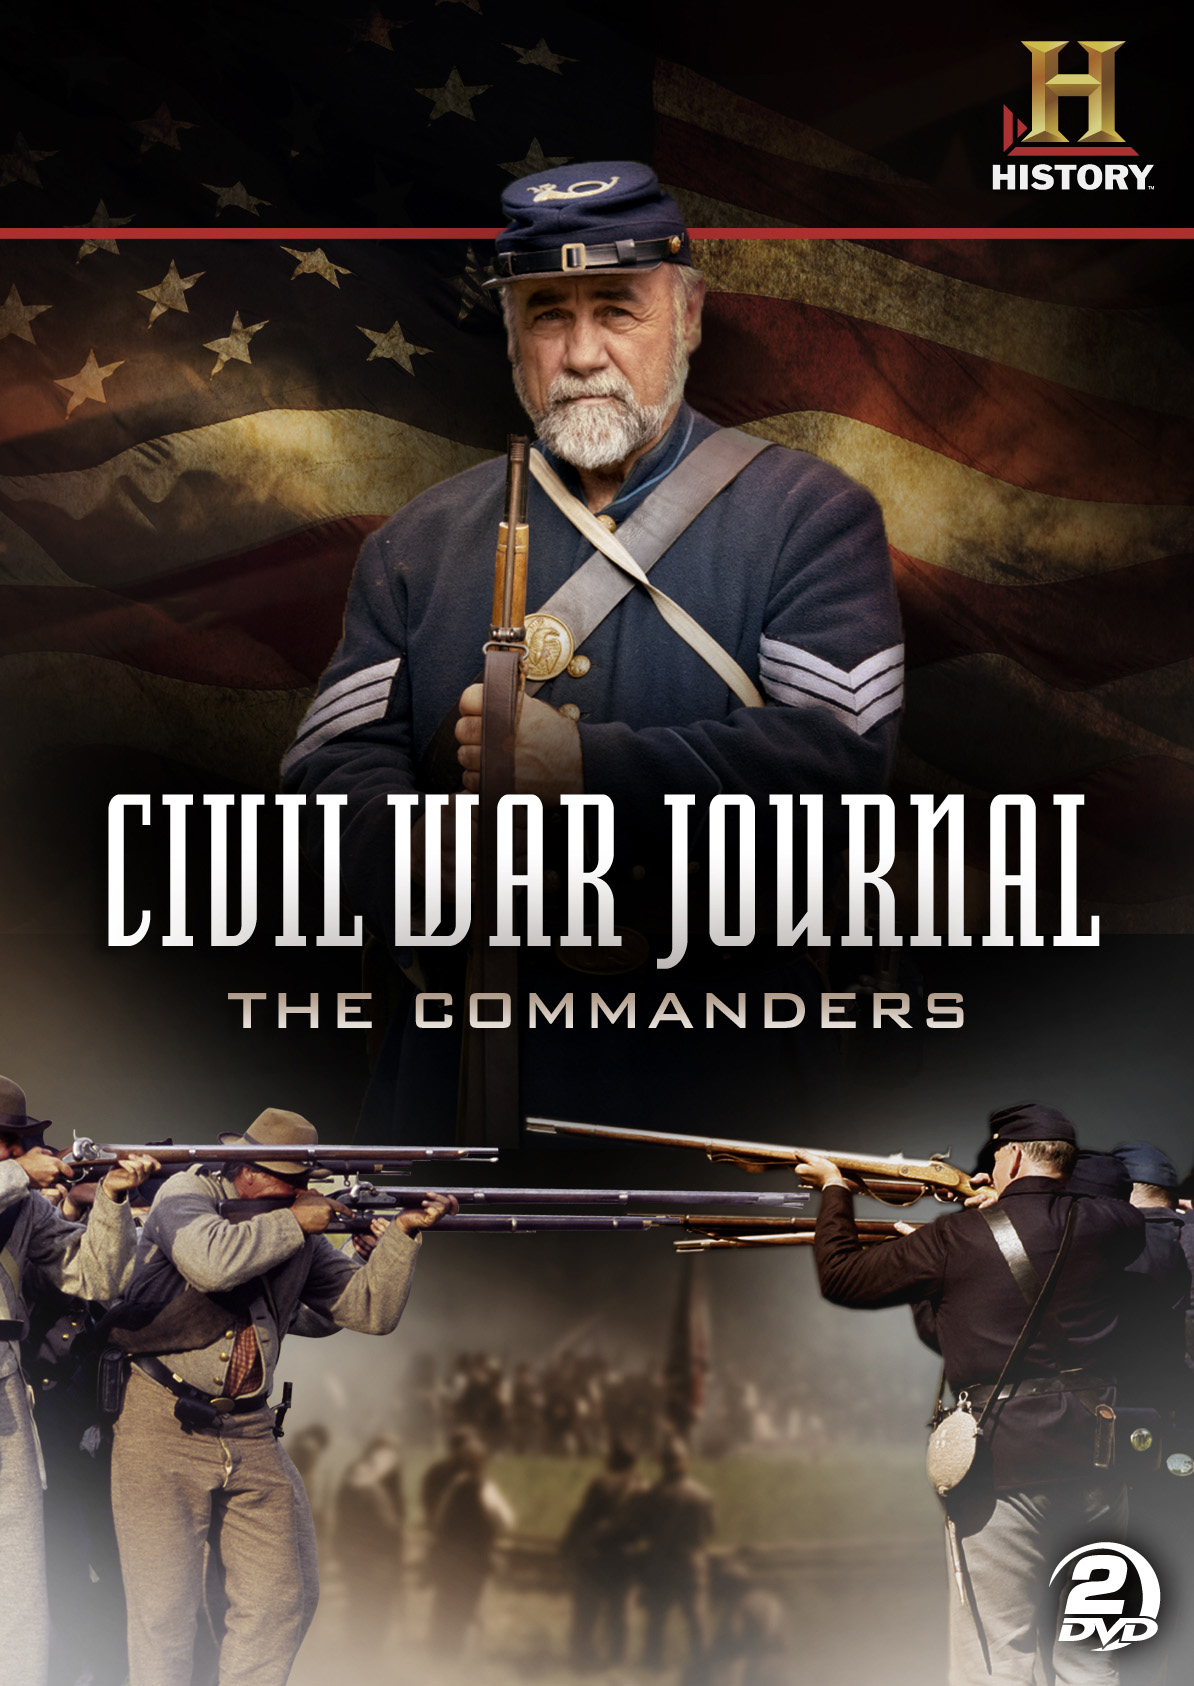 Civil War Journal: Commanders movie